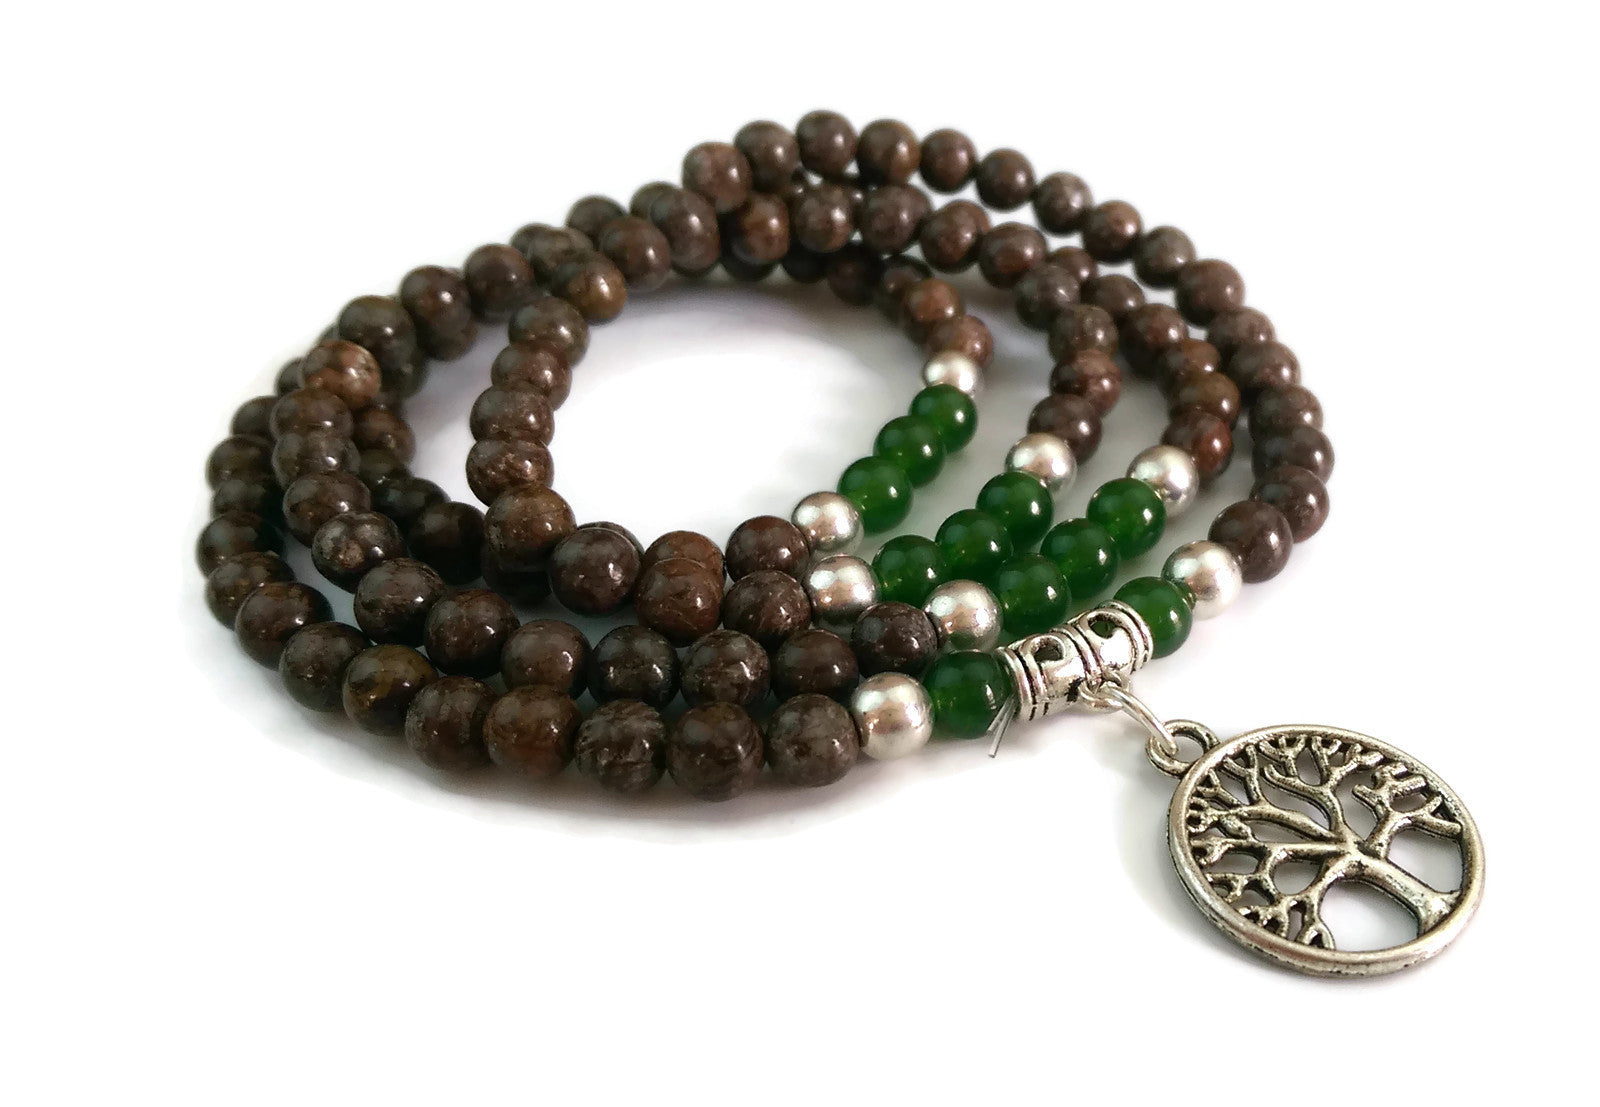 6mm Jasper and Green Jade with 925 Silver Wrist Wrap Mala Bracelet with Tree of Life Charm